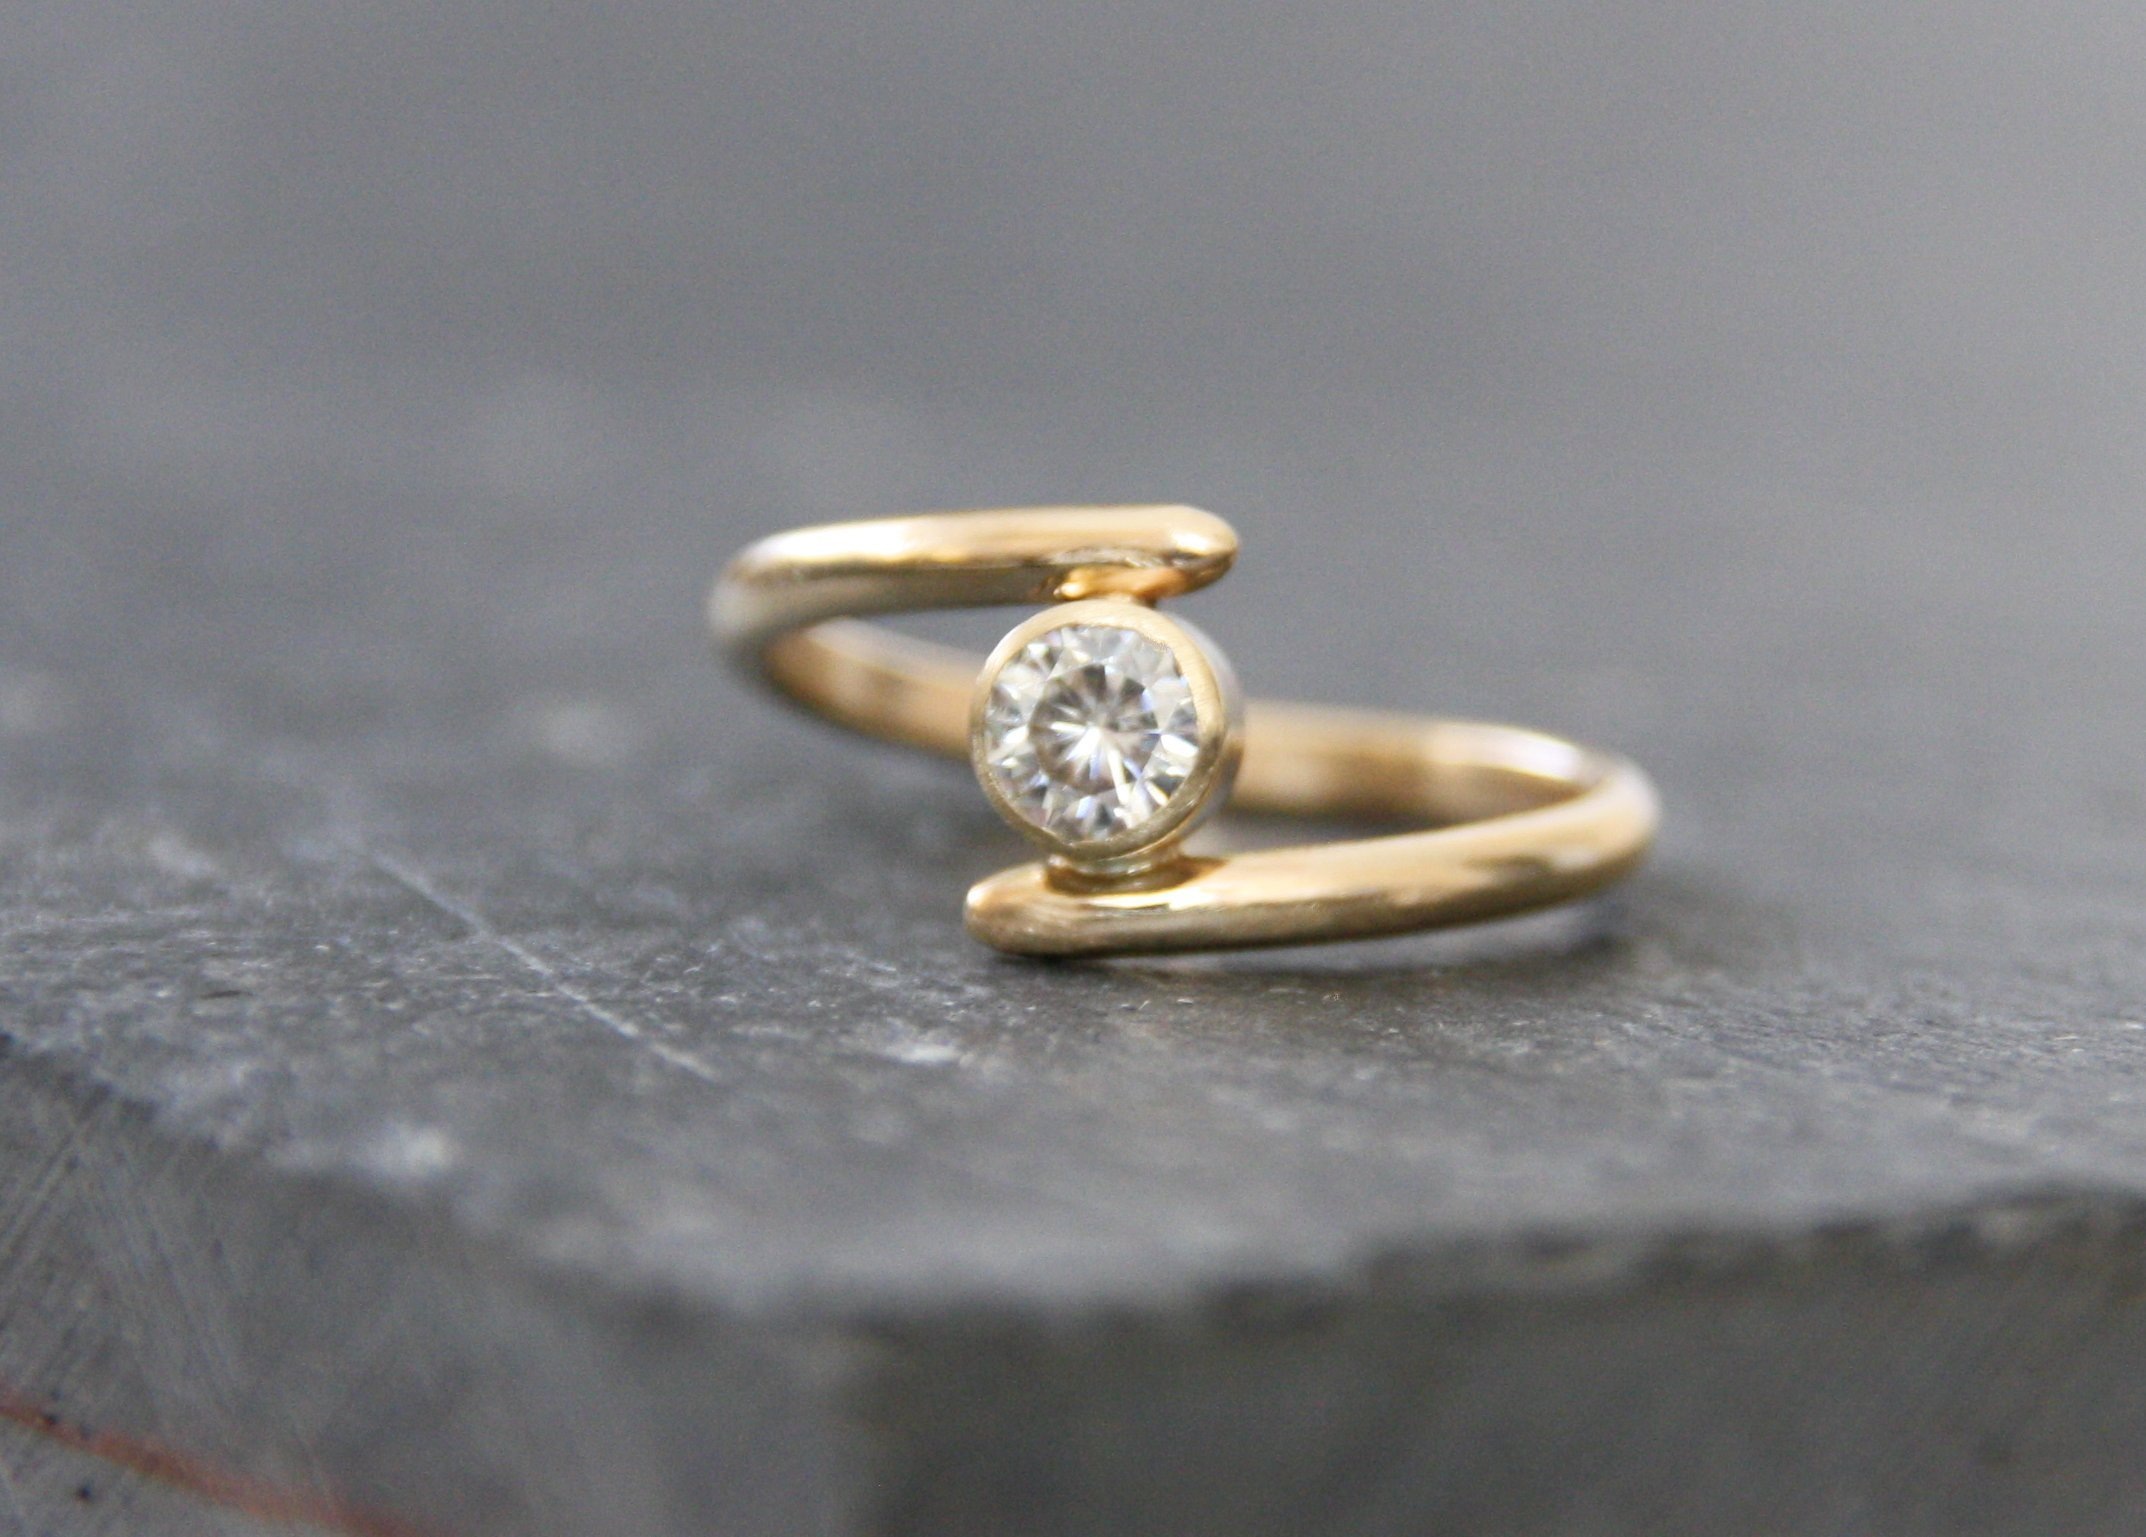 Moissanite and 14k gold